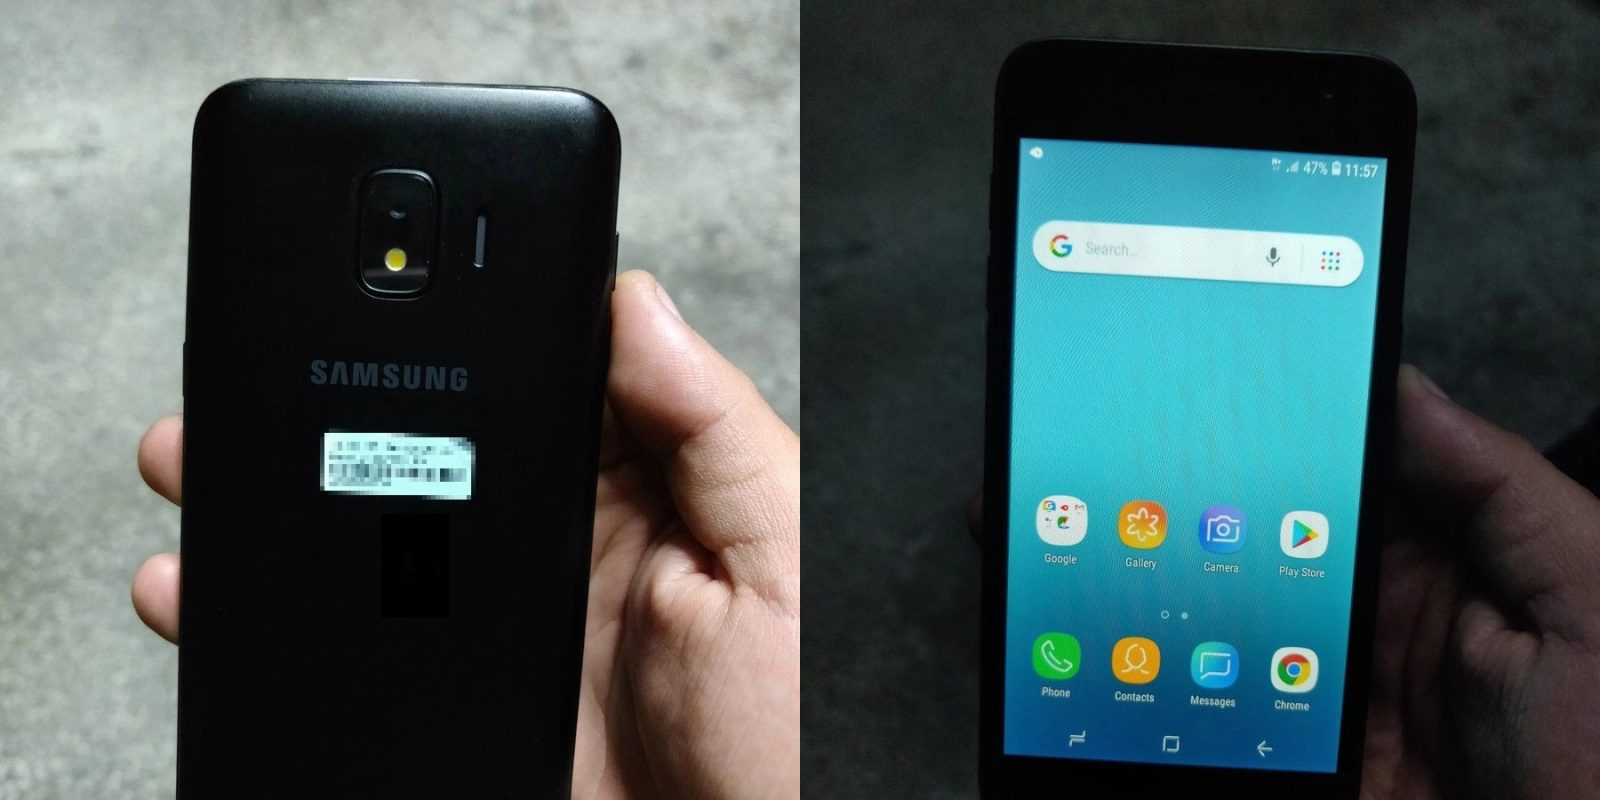 Samsung Galaxy J2 Core w/ Android Go confirmed to launch with